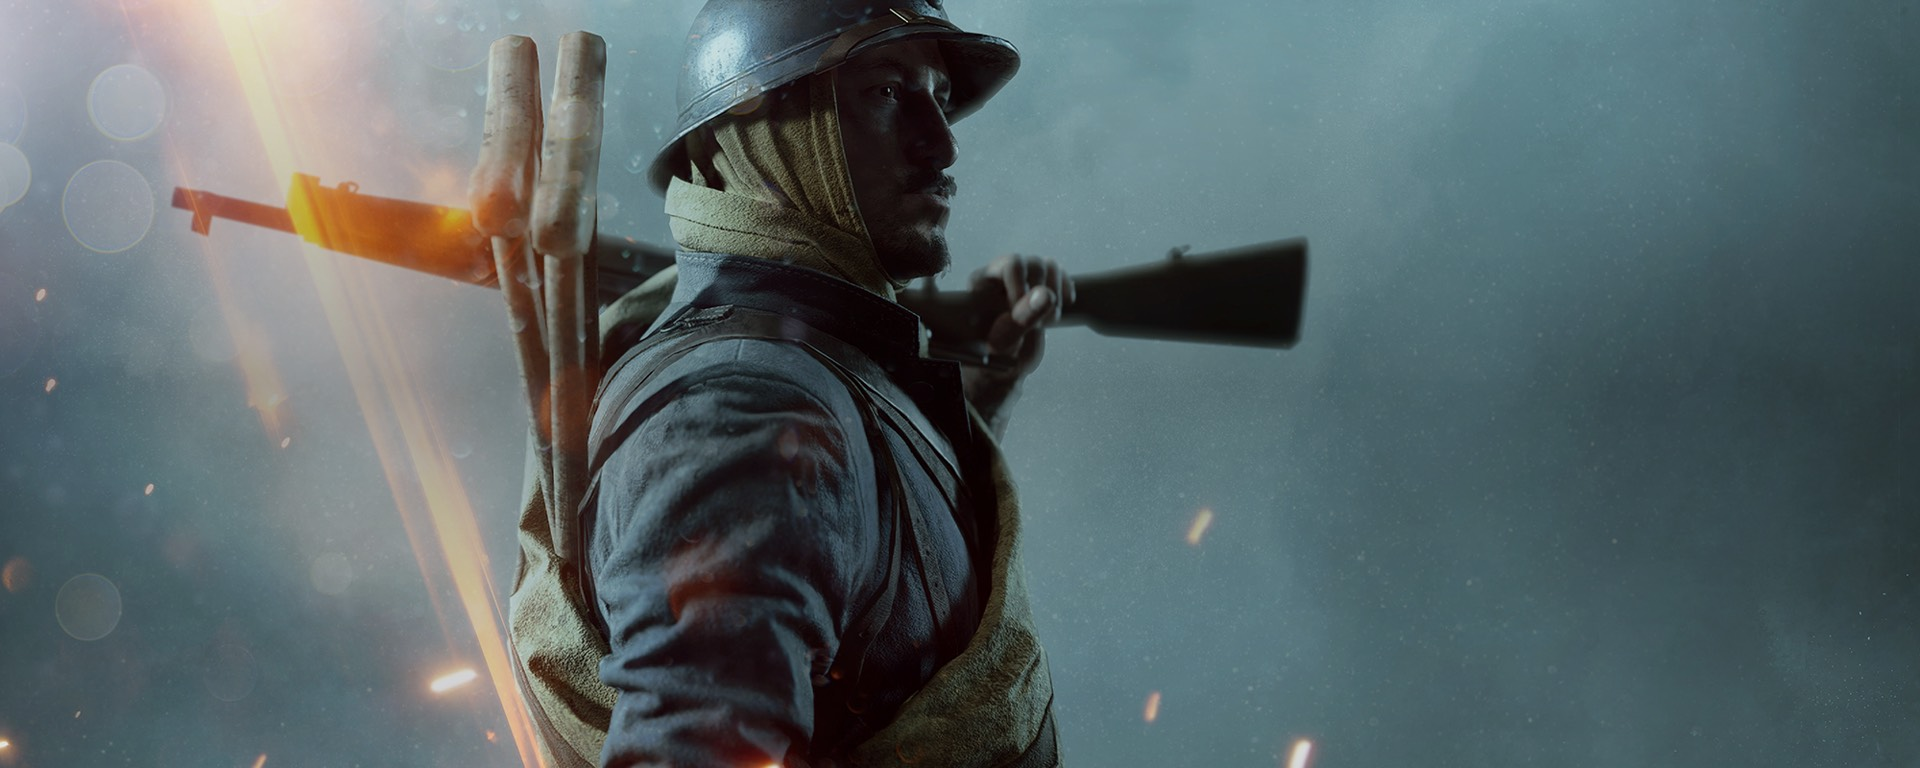 battlefield_1_they_shall_not_pass (12)